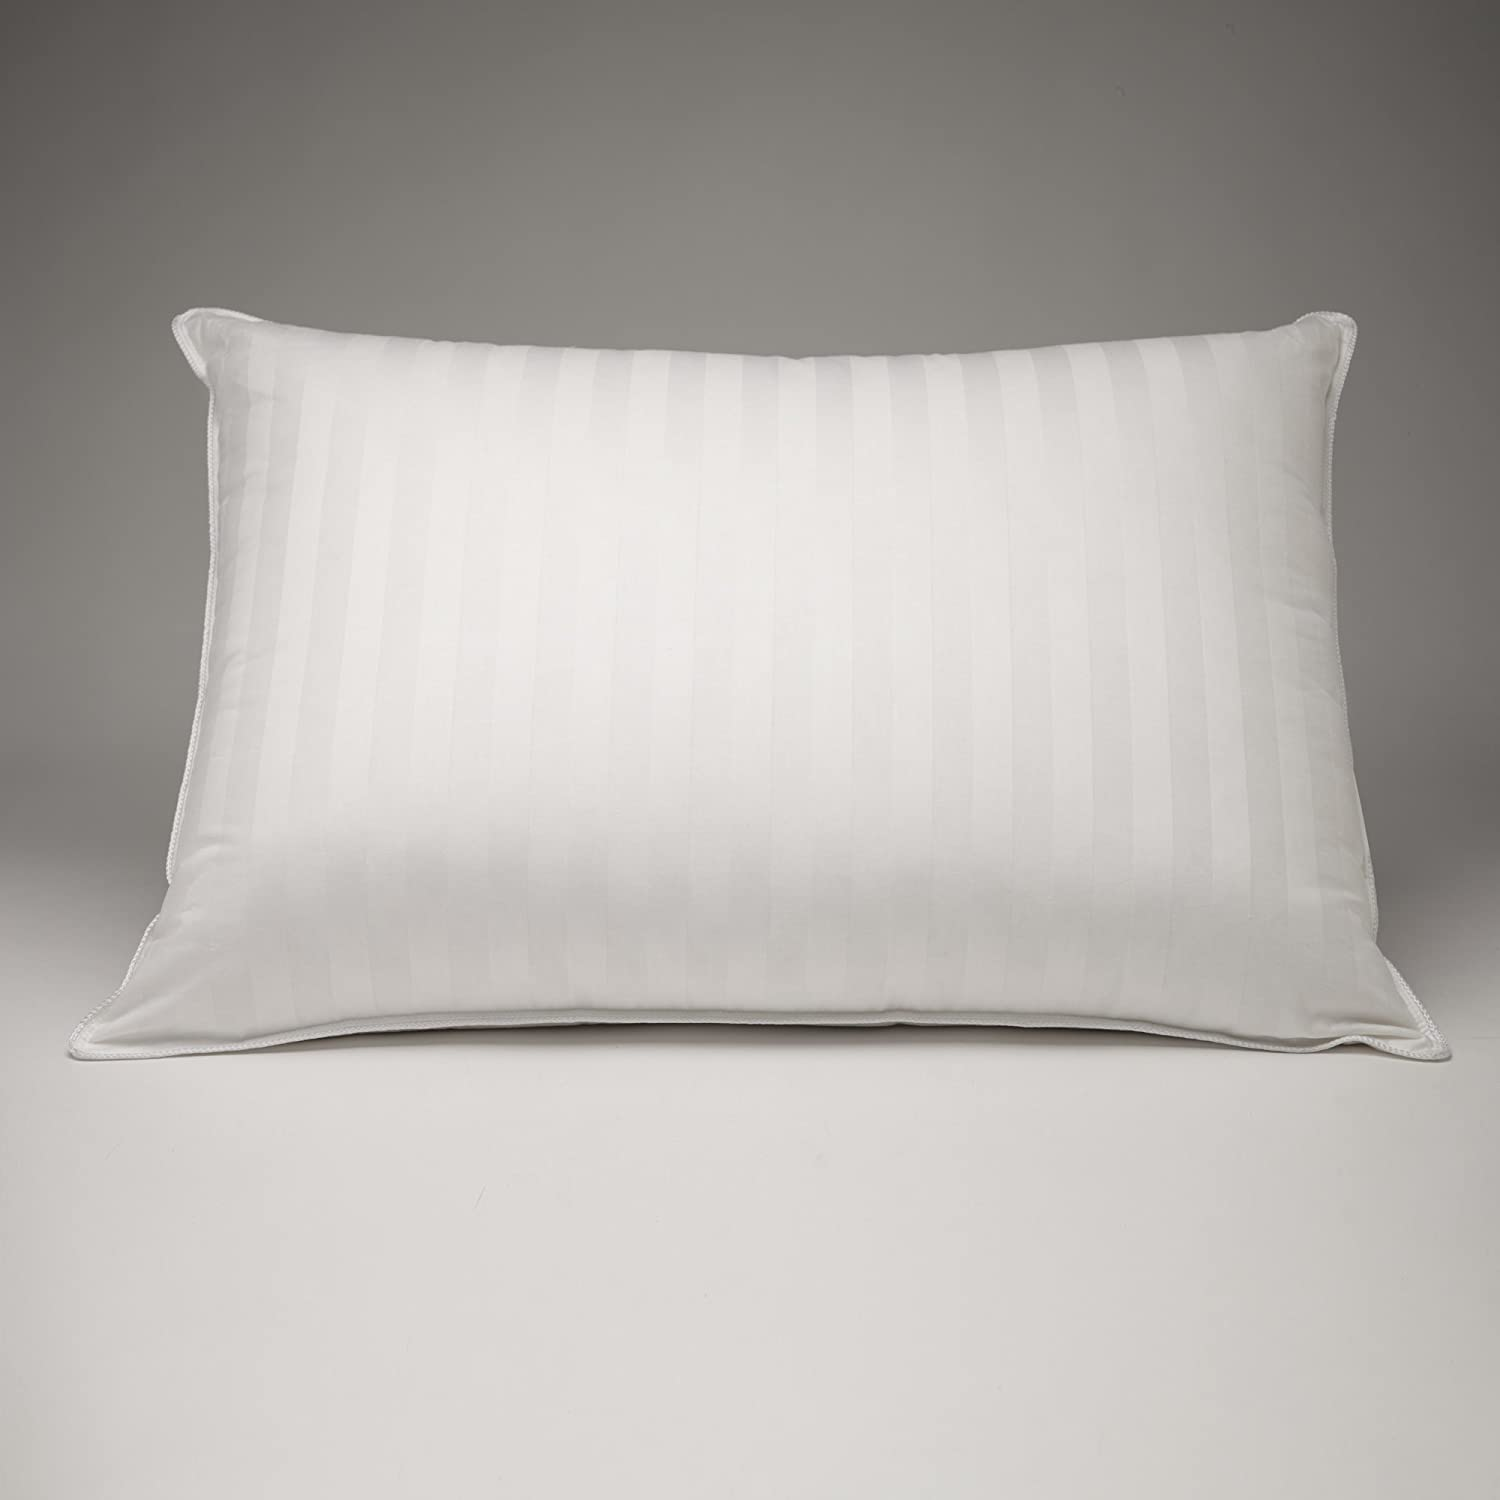 Best Down Pillow 2019 Top 5 Luxurious Options For Amazing